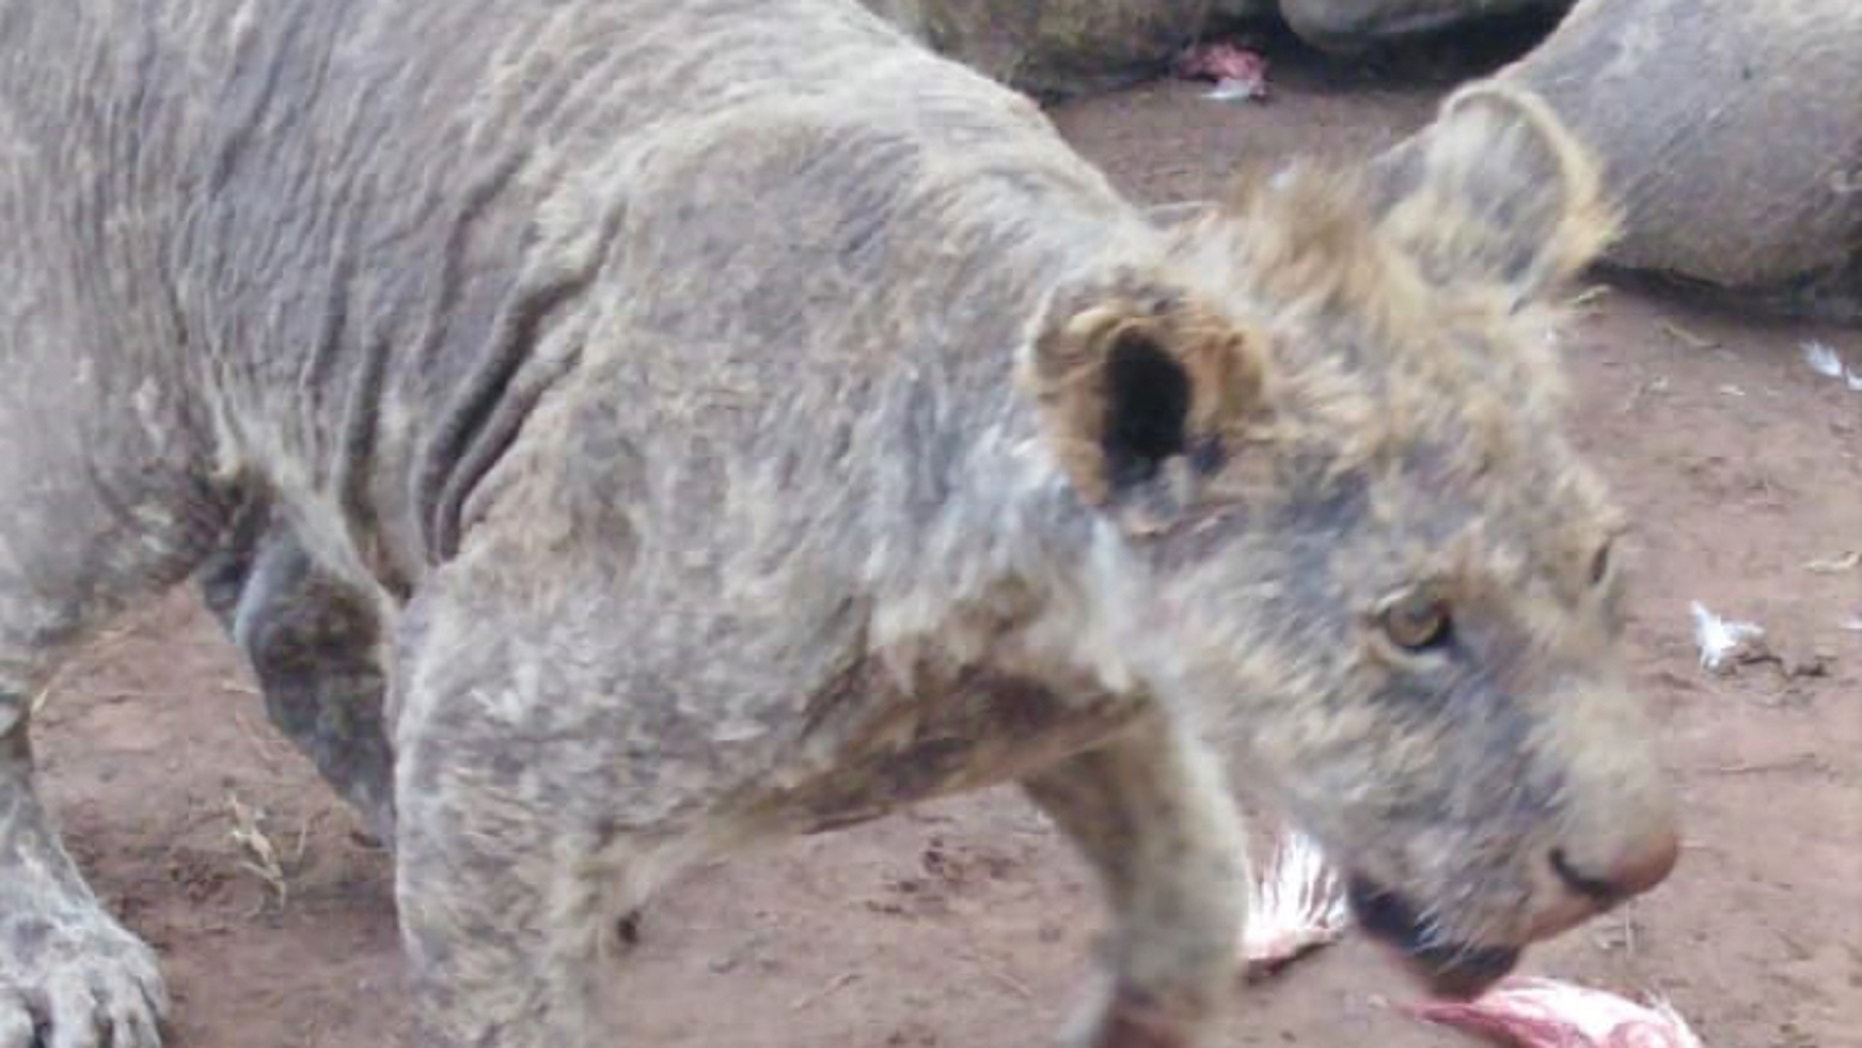 Westlake Legal Group mangy-lion 100-plus neglected lions found with mange, neurological problems, on South African farm Stephanie Pappas, Live Science Contributor LiveScience fox-news/science/wild-nature/mammals fnc/science fnc article 57b1a3d1-f928-5c18-9ec3-88490bc5f06d